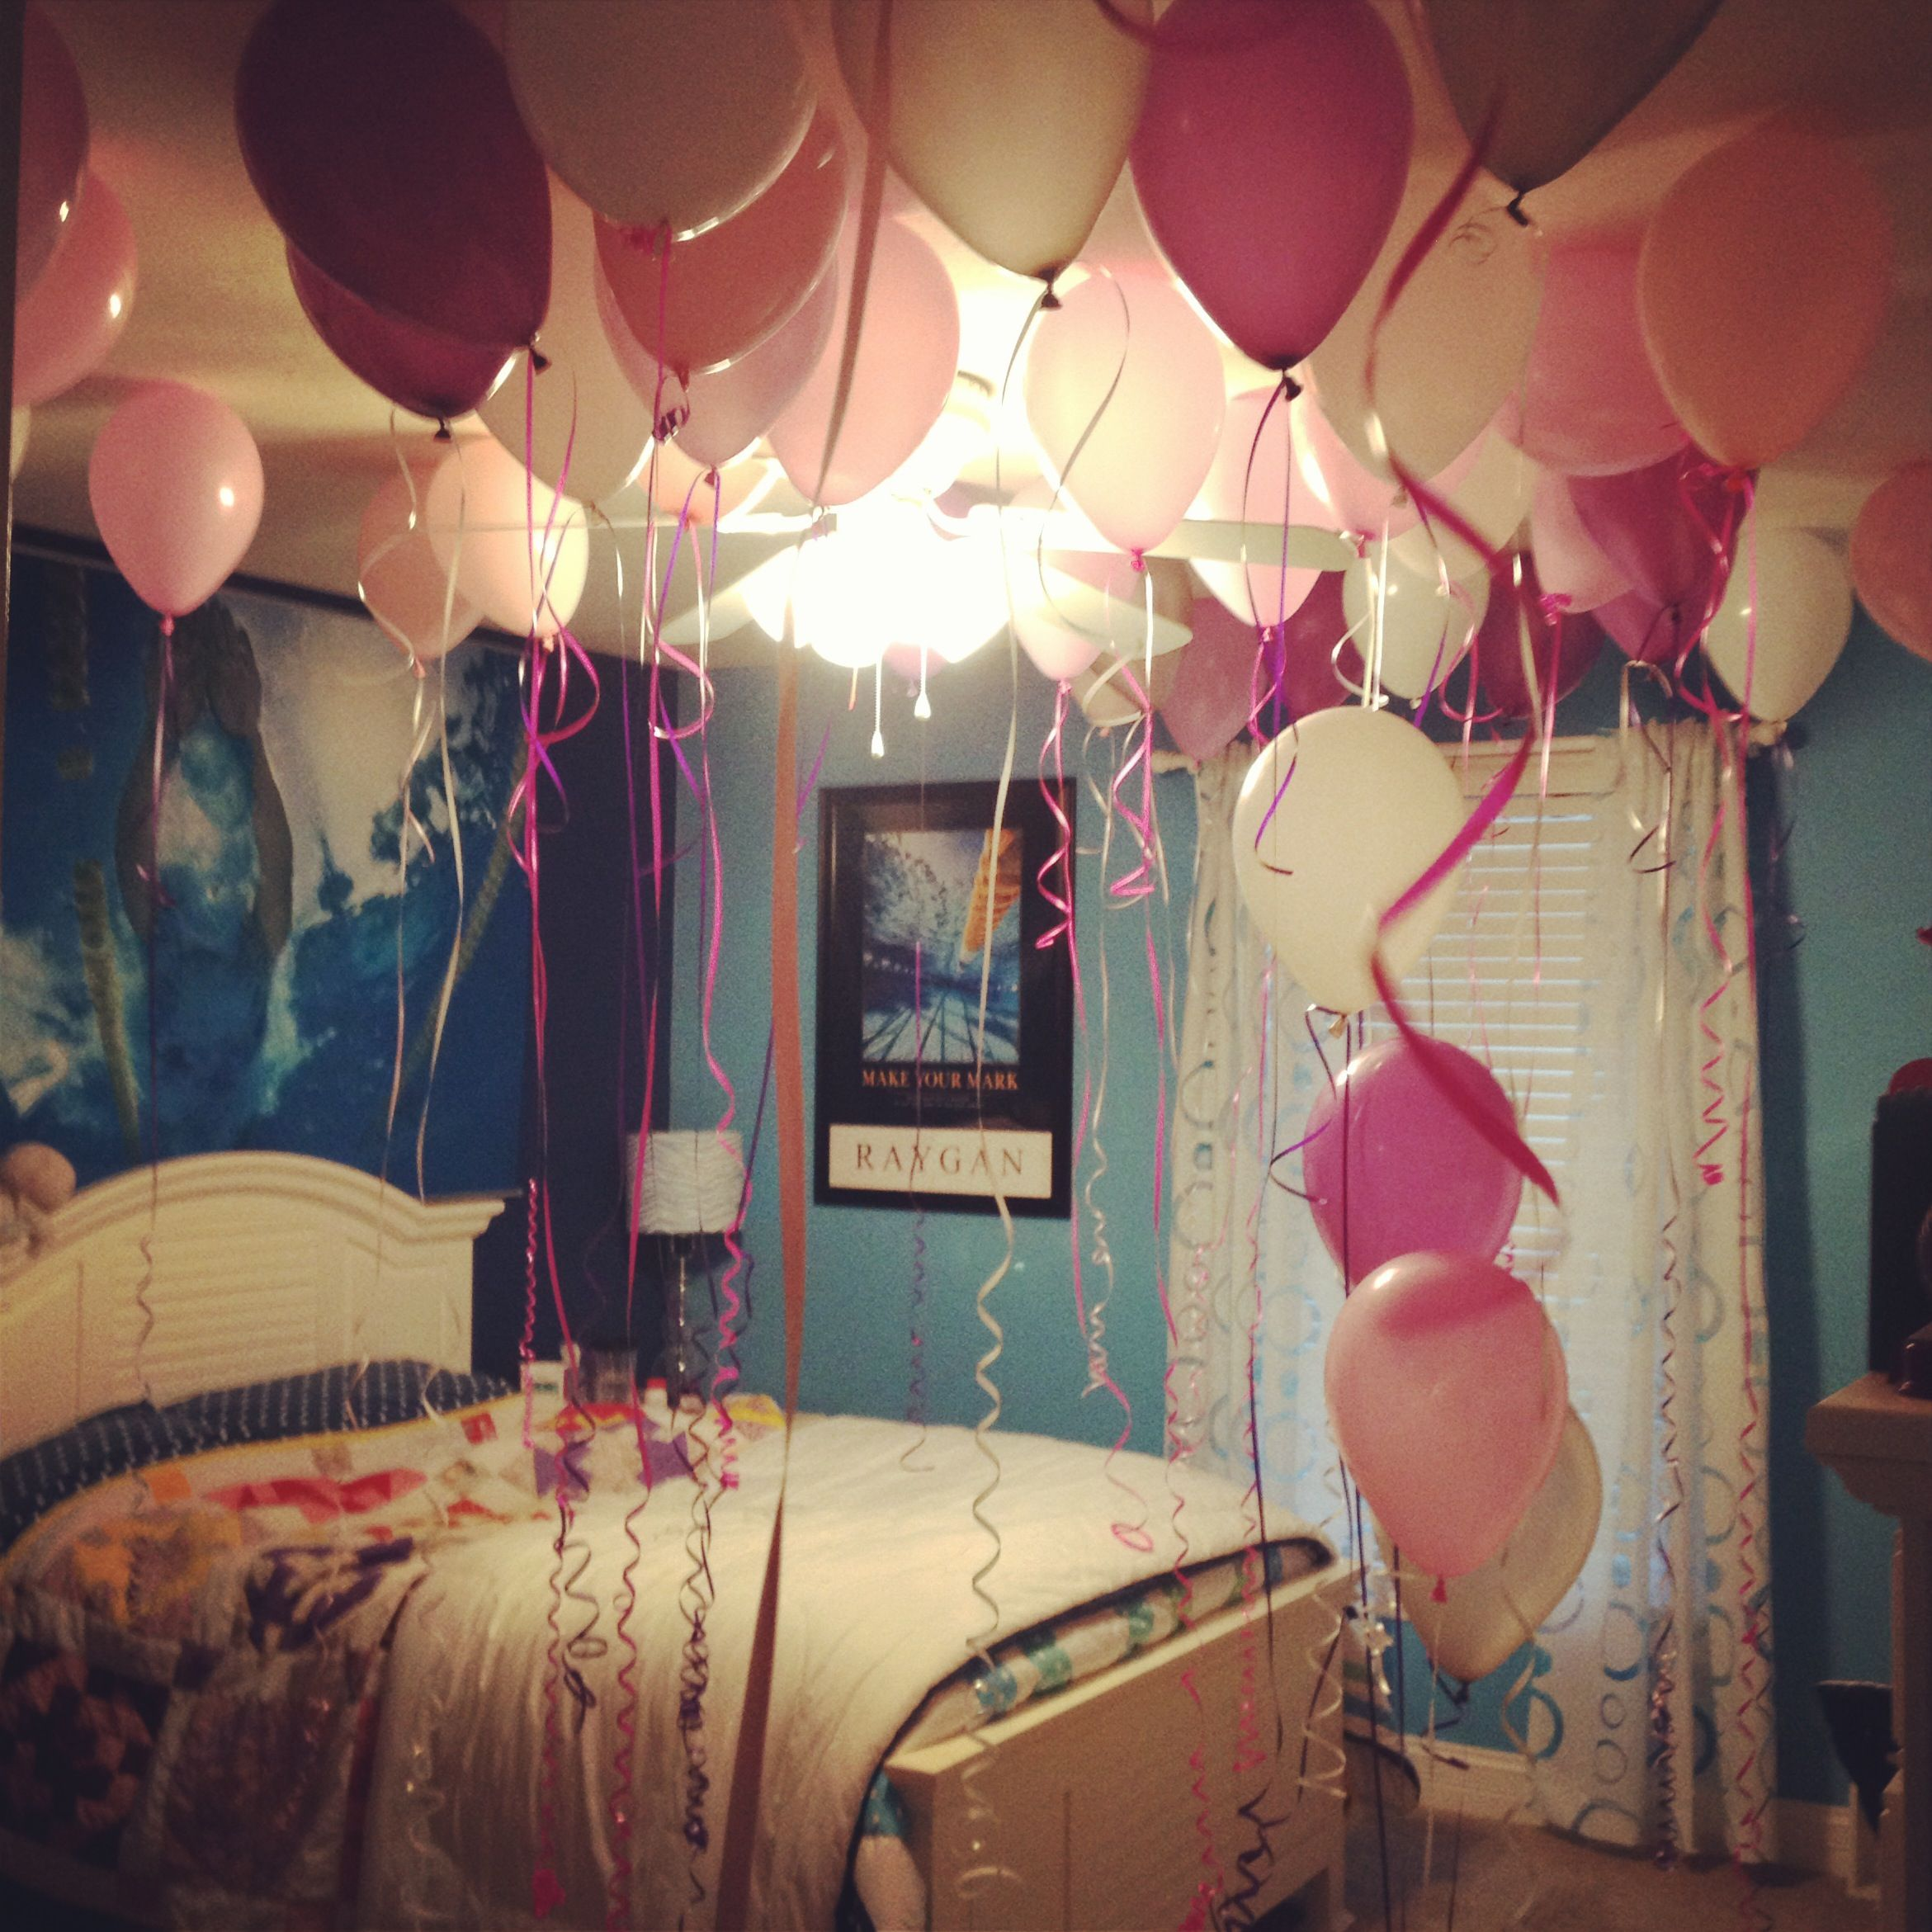 Decorated room with balloons on 16th birthday for Balloon decoration ideas for sweet 16